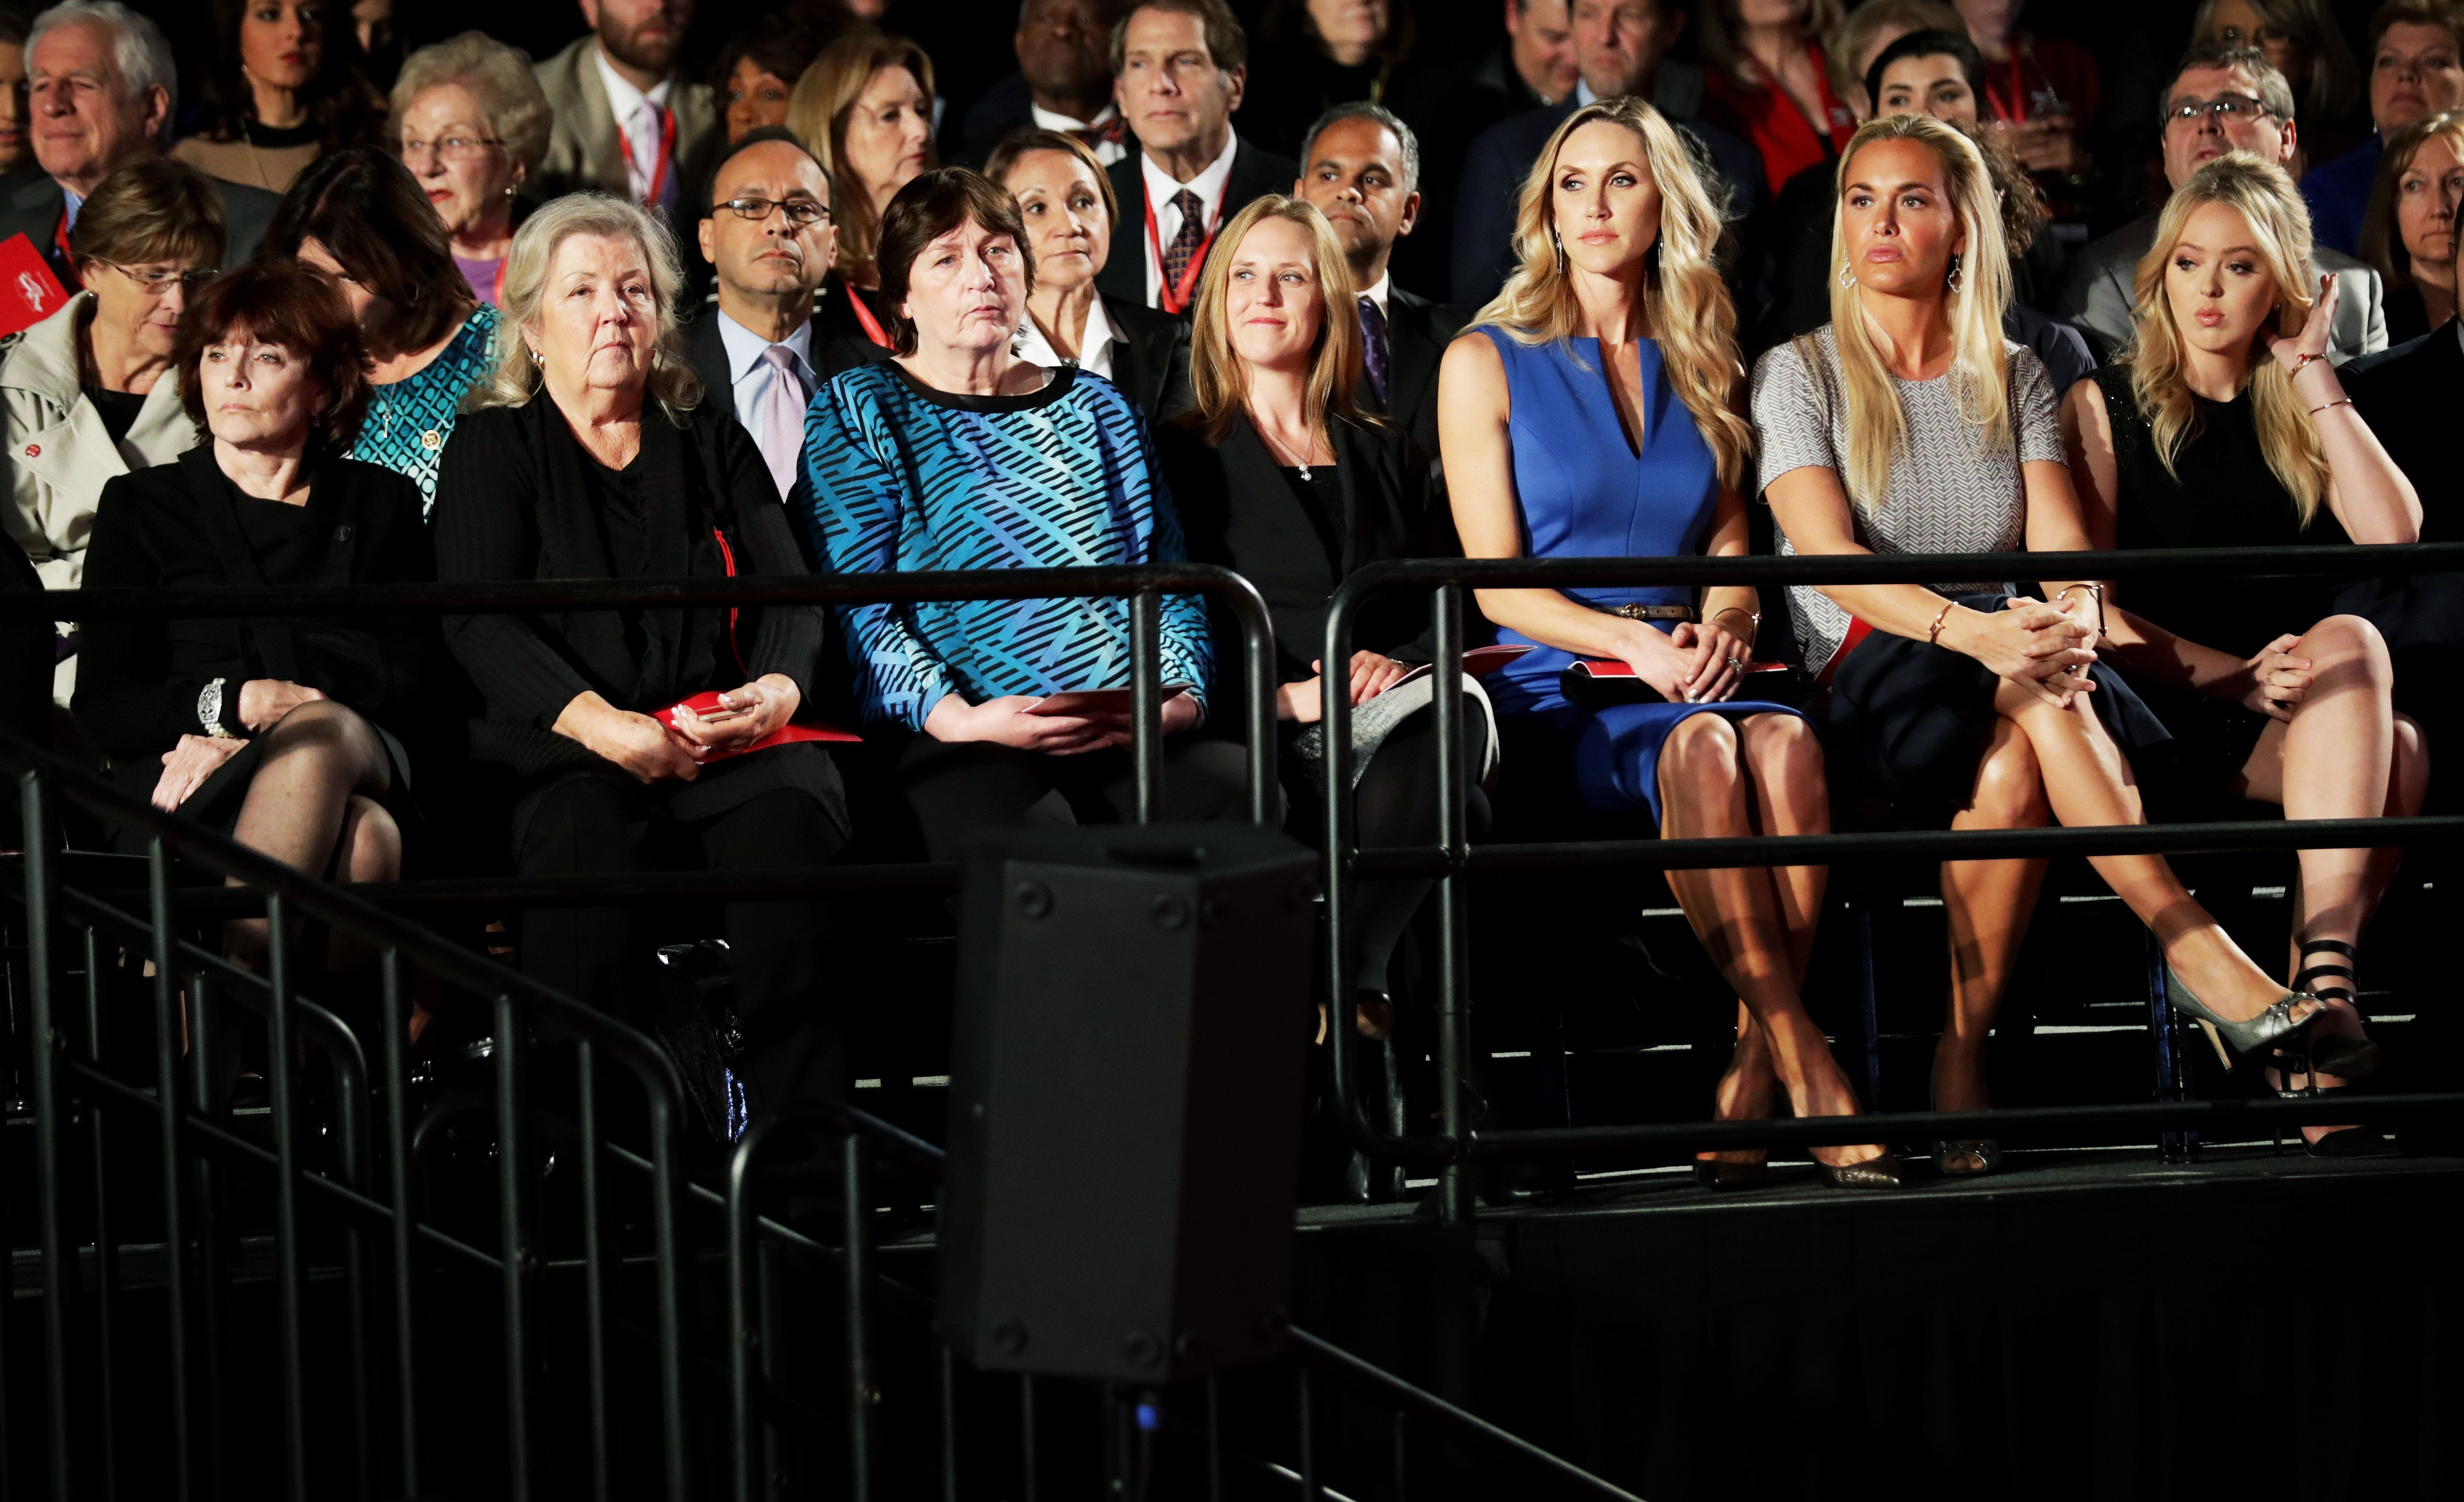 Kathleen Willey, Juanita Broaddrick, Kathy Shelton, Candice Jackson, Lara Trump, Vanessa Trump and Tiffany Trump attend